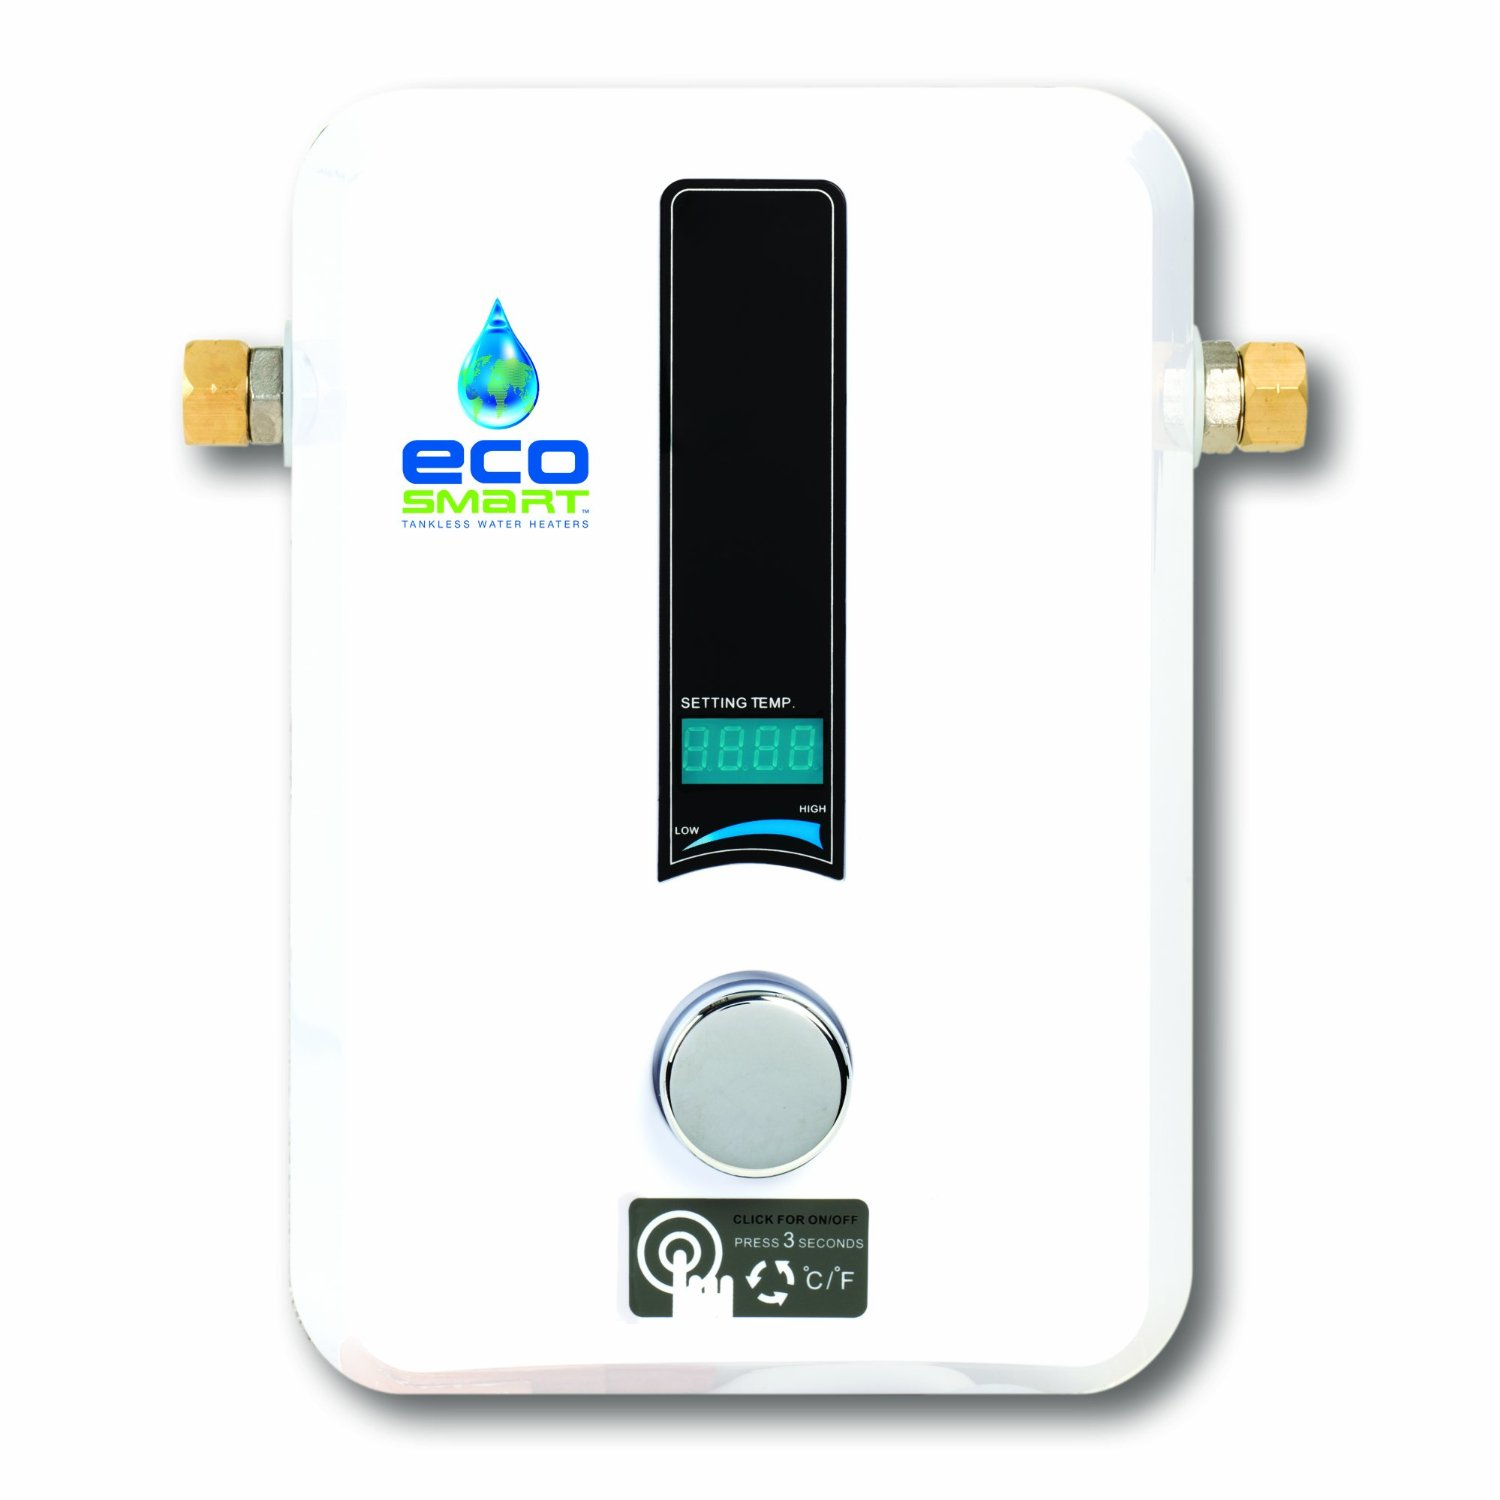 Pros and cons of gas tankless water heaters - Ecosmart Eco 11 Electric Tankless Water Heater